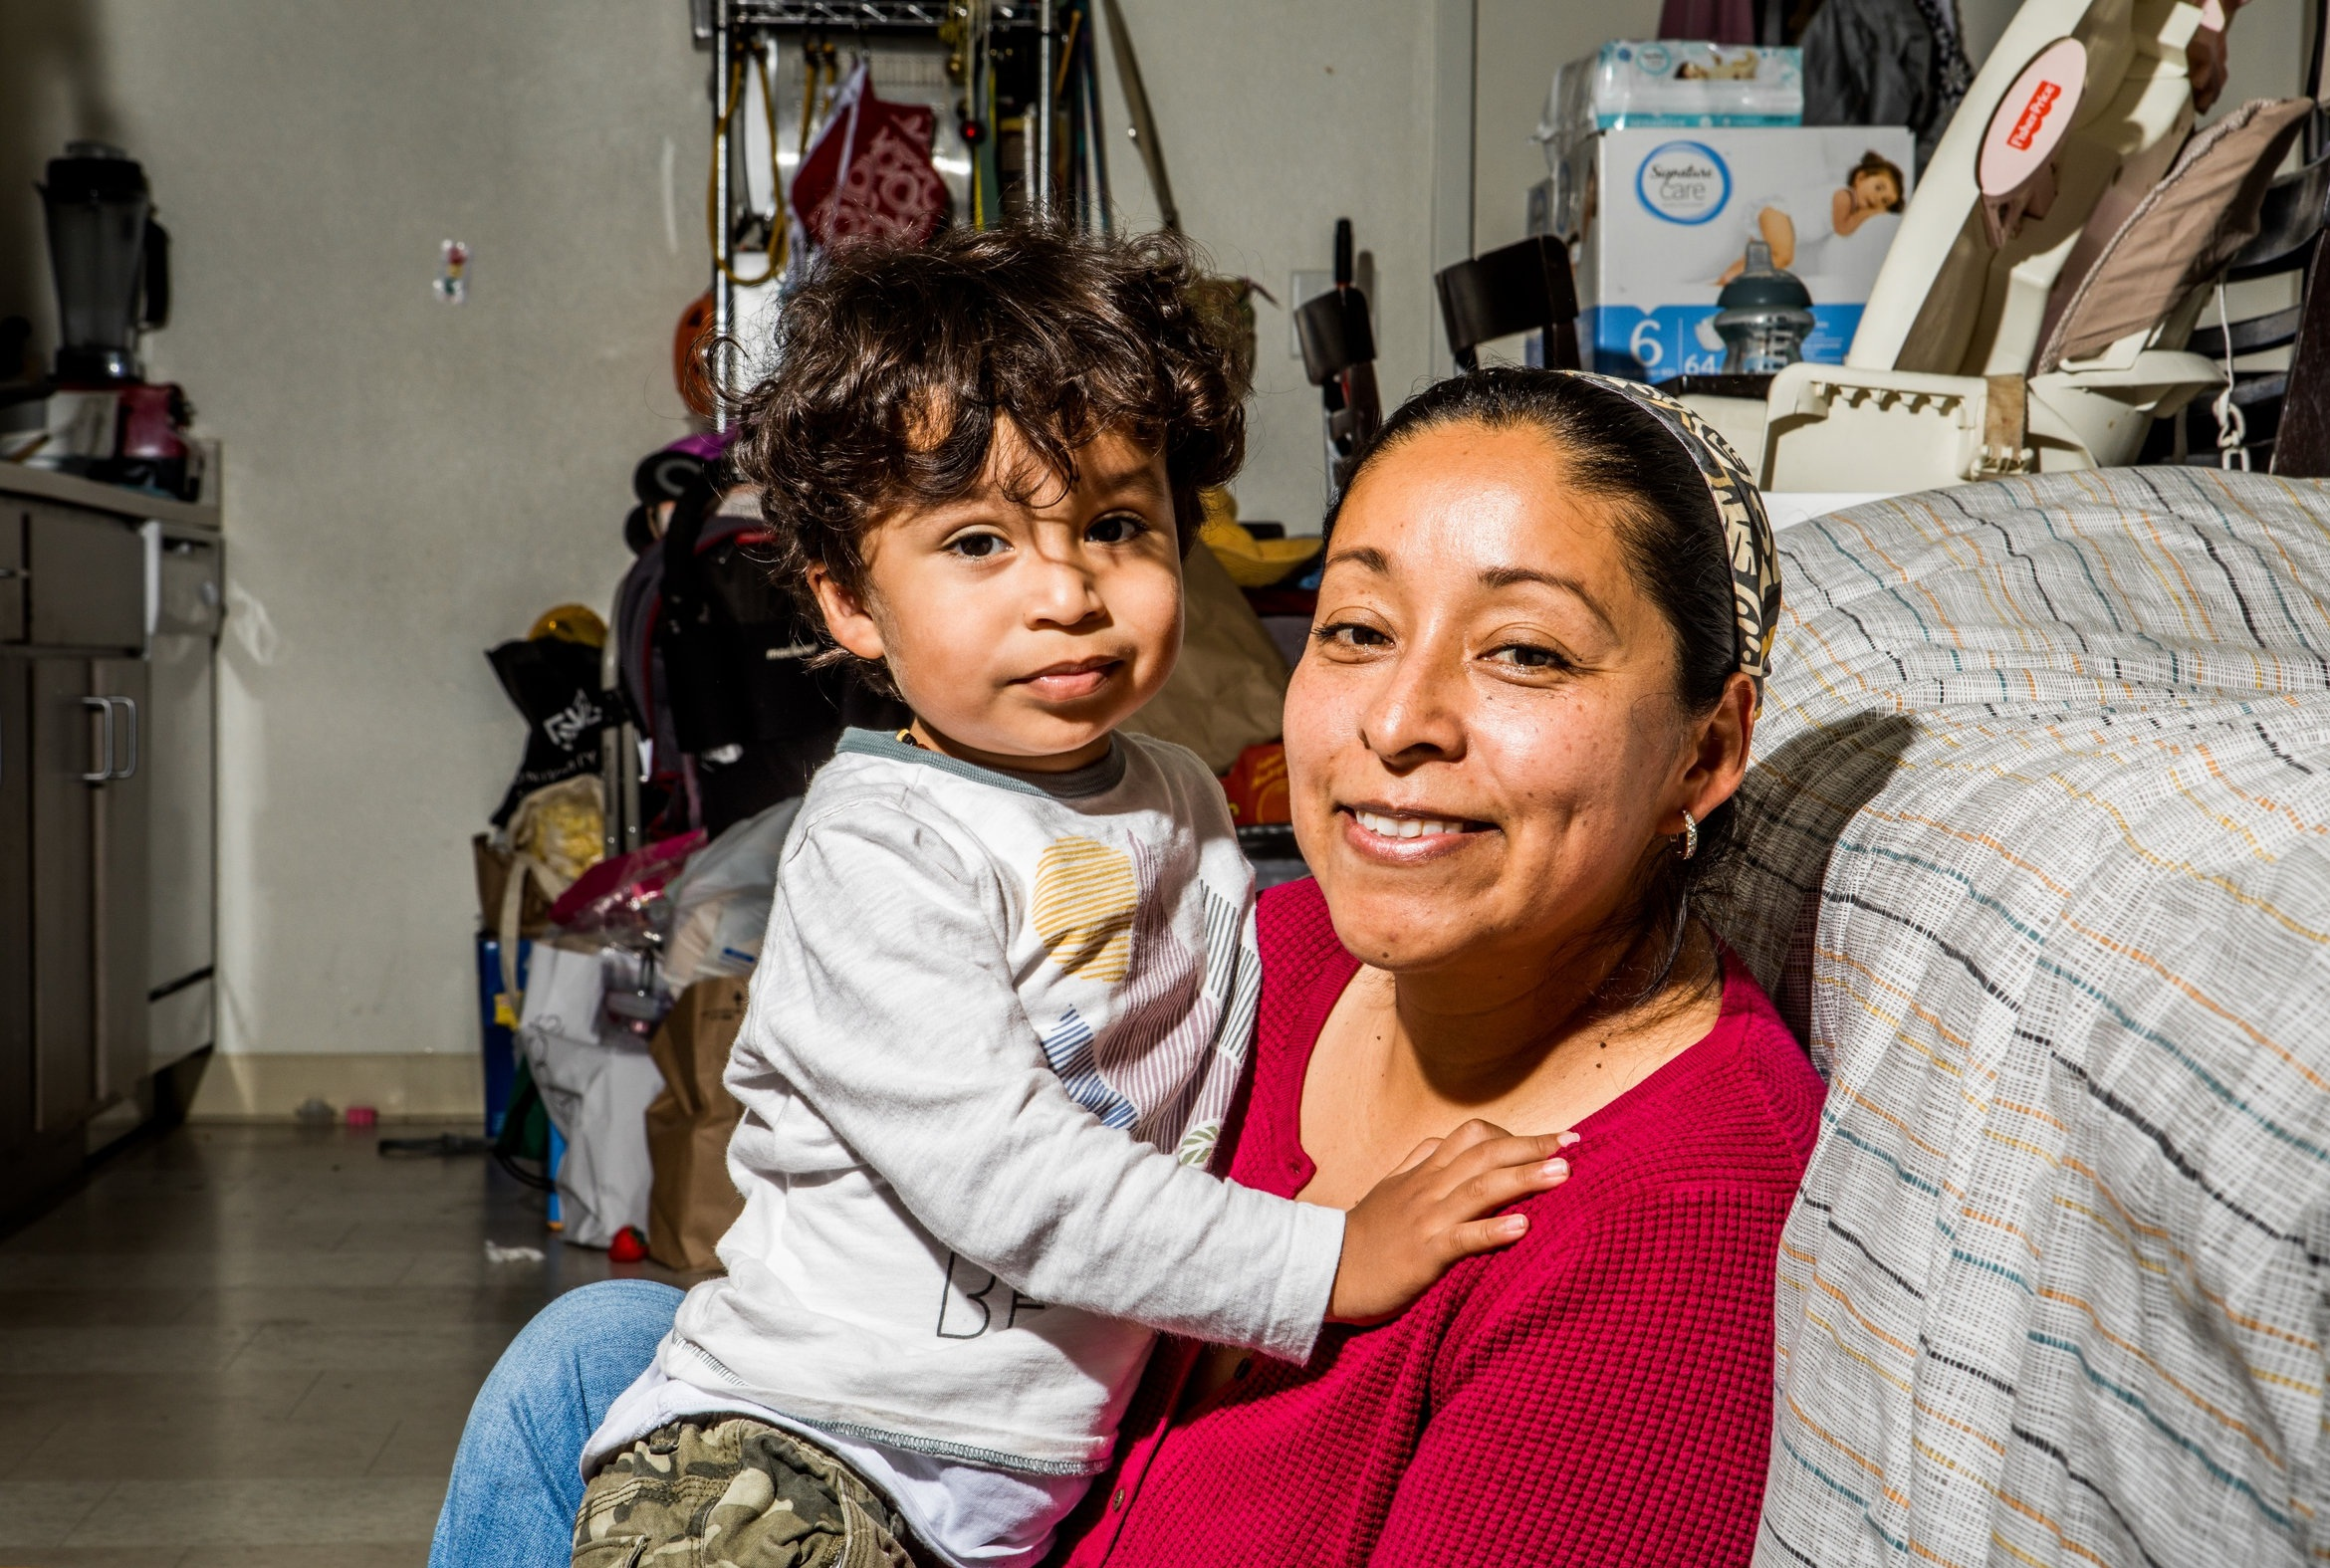 Tina and Carlos (24 mo./diaper size 6) live in a small San Francisco apartment and receive diapers from Help a Mother Out.